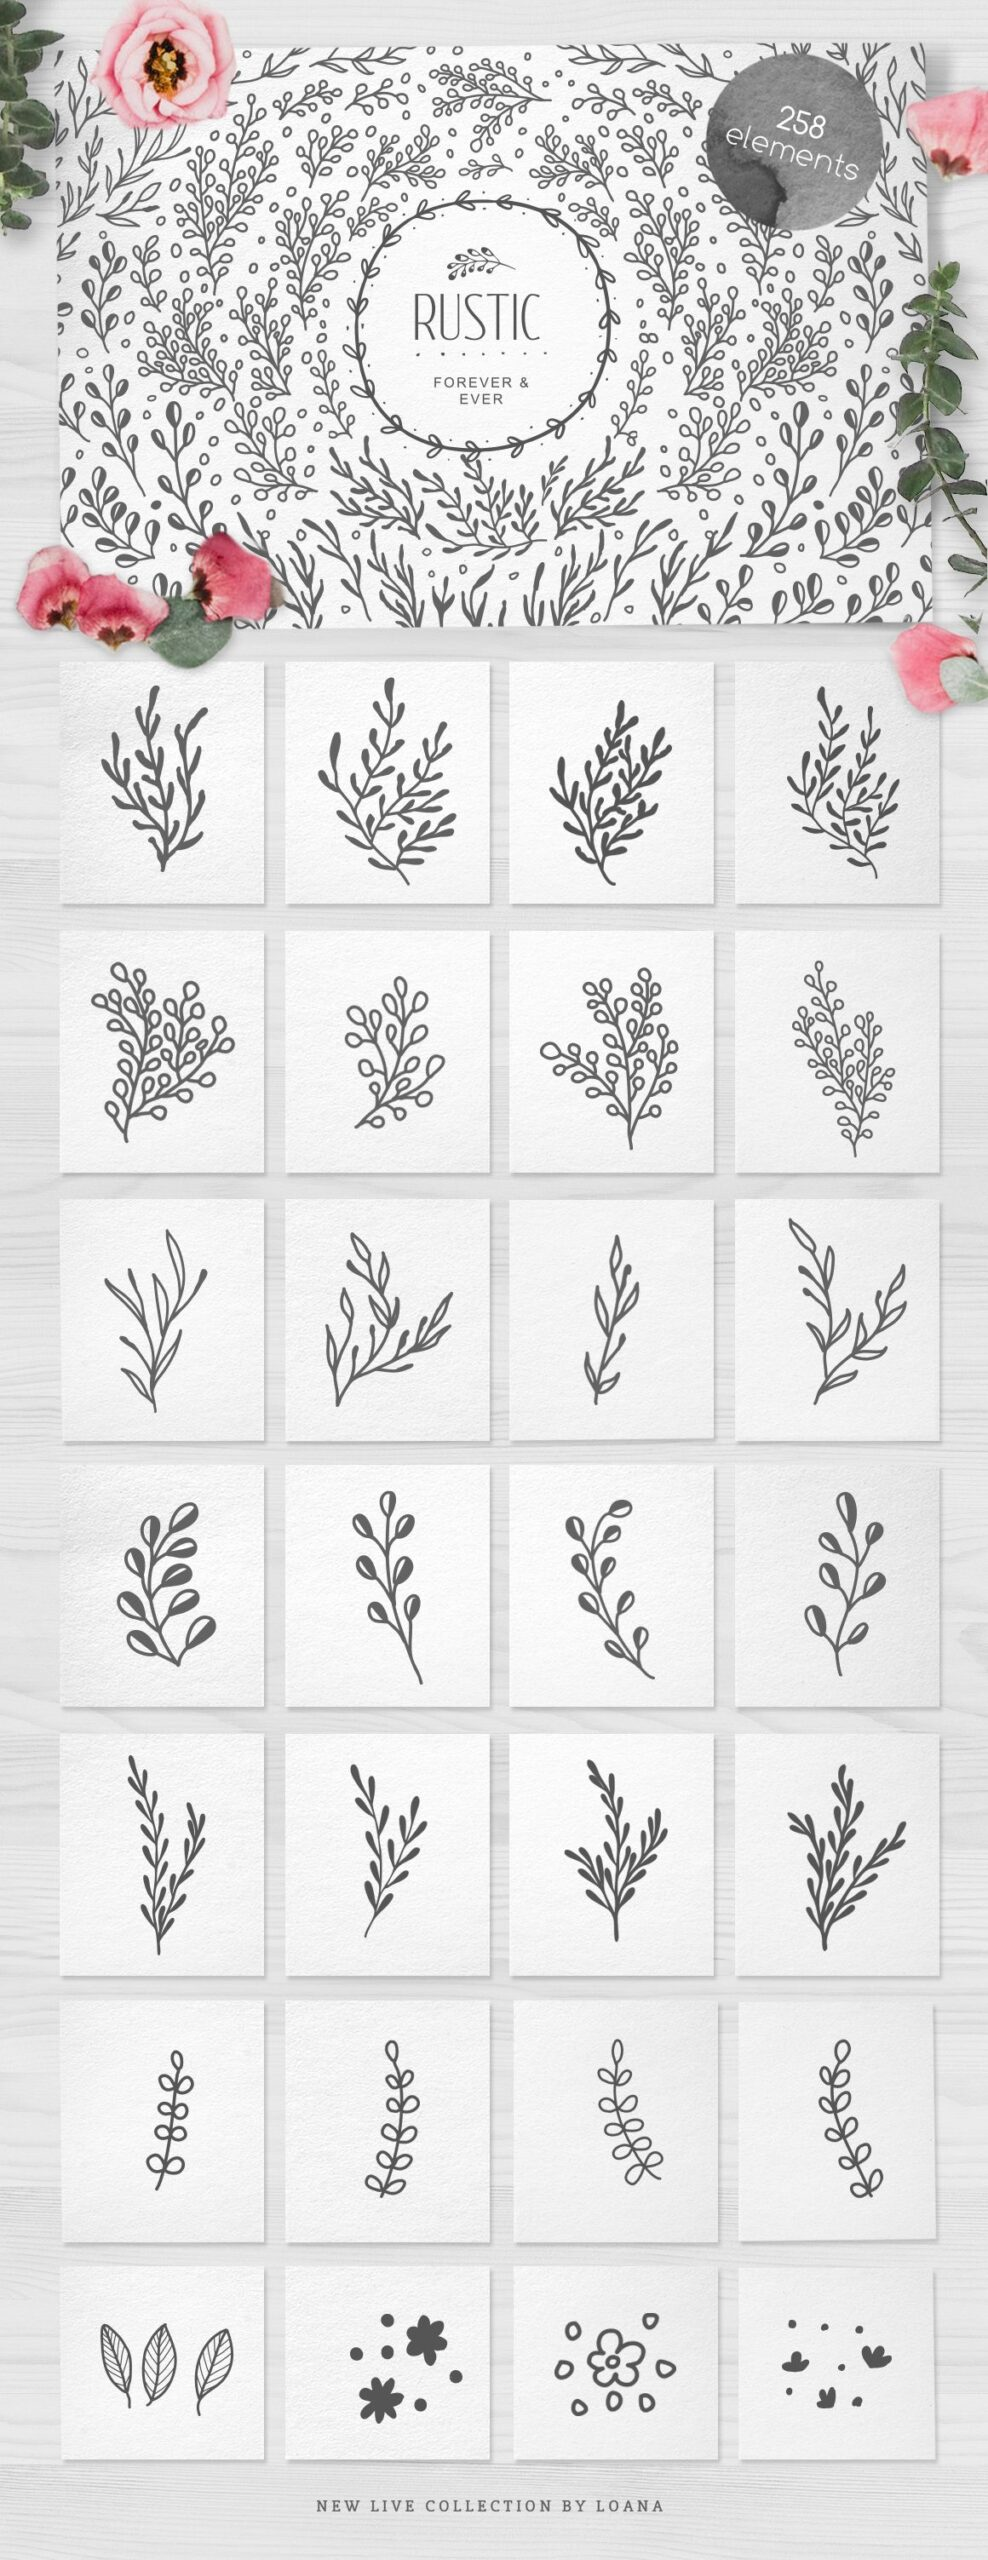 Free Floral Elements by Luba Vega - Exclusive at Xquissive.com